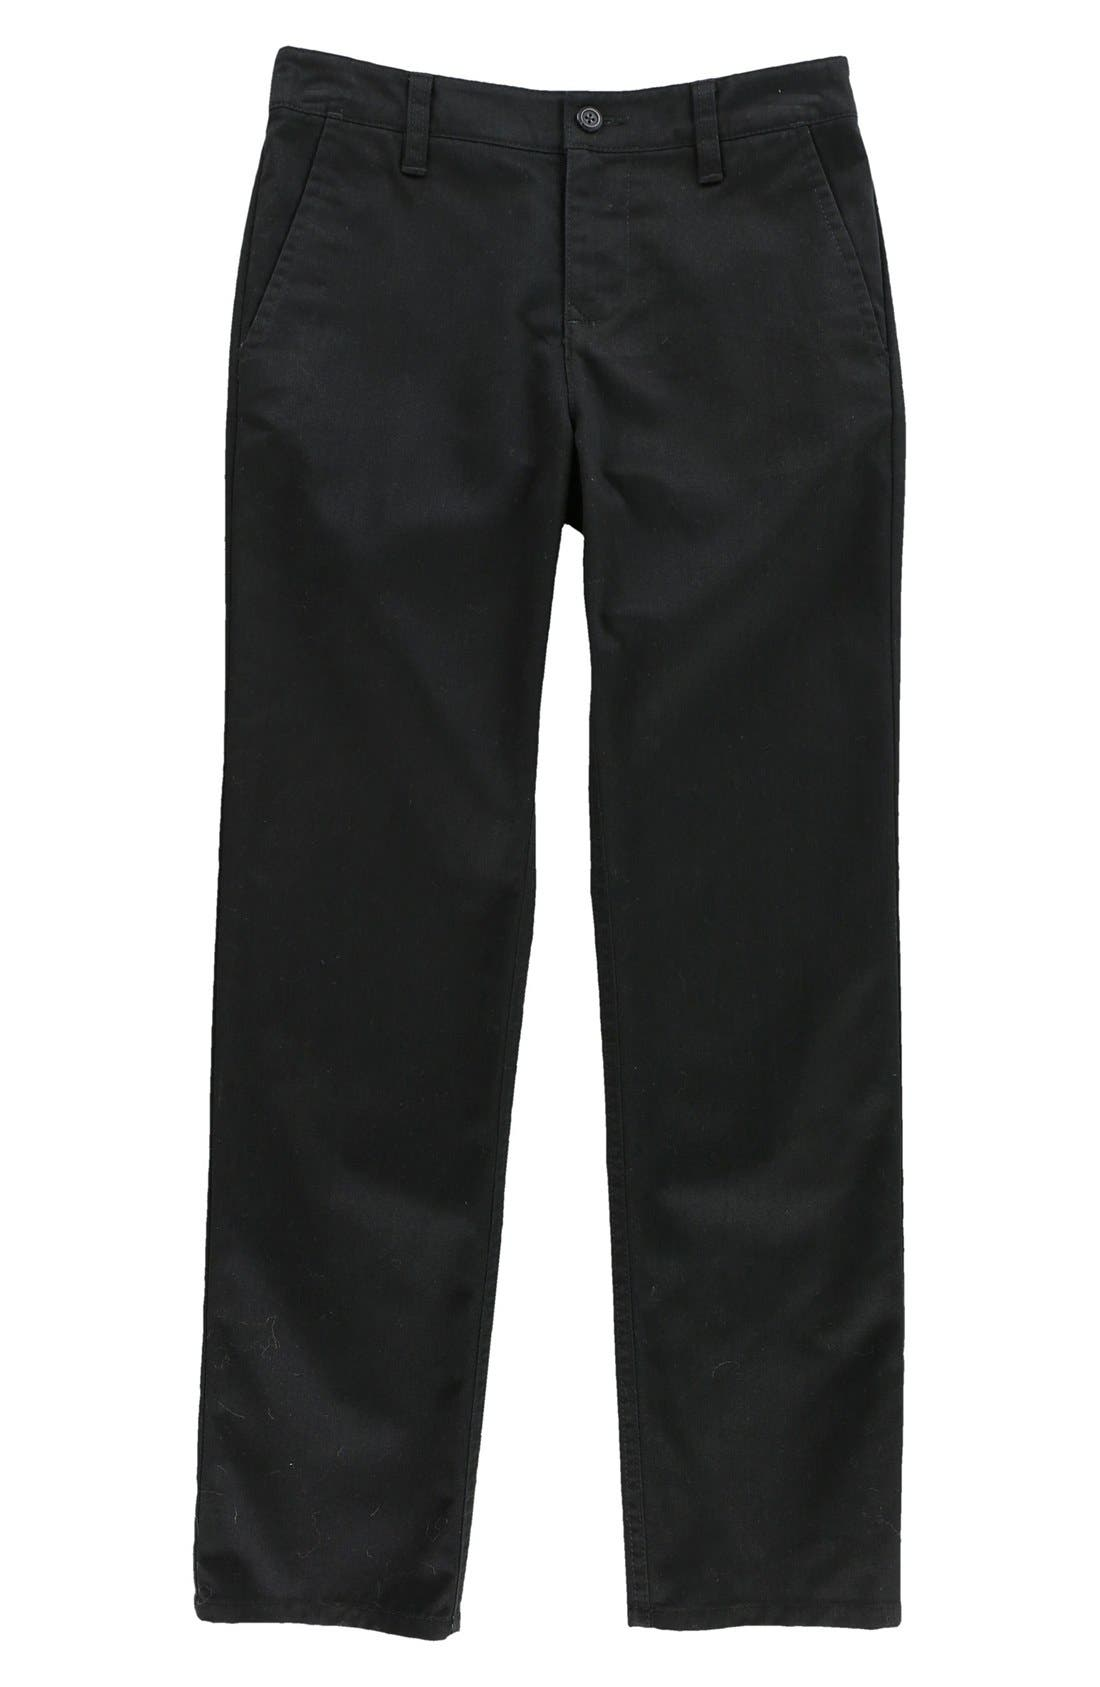 Main Image - O'Neill Contact Straight Leg Twill Pants (Toddler Boys)